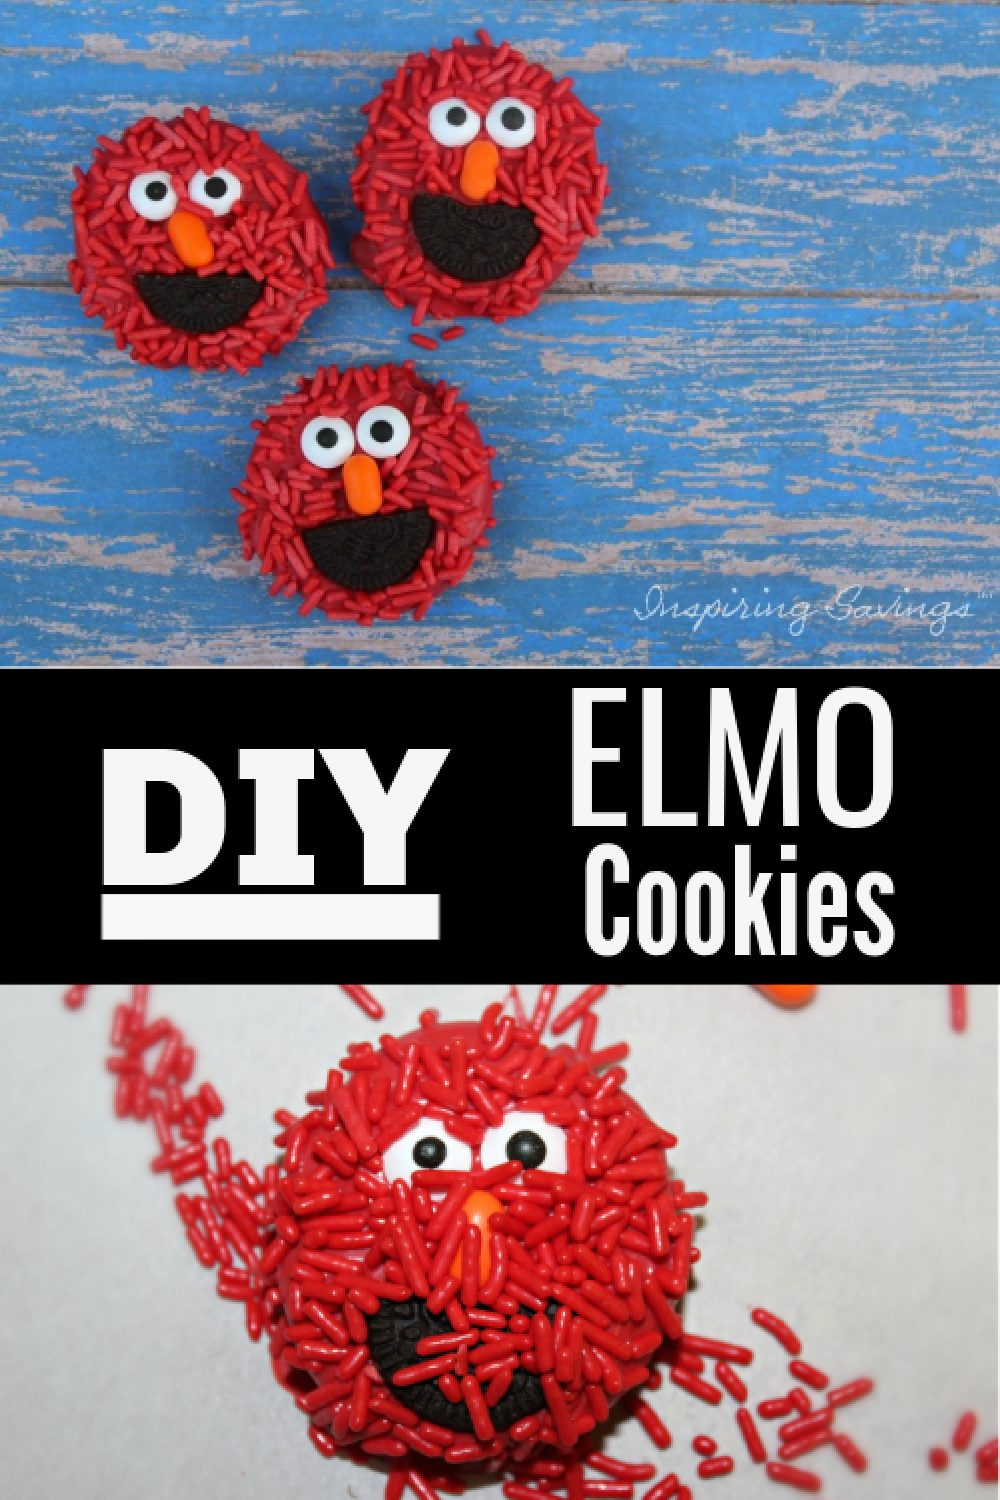 """Oreo cookies turned in to ELMO cookies on blue background - image contains text overlay """"DIY Elmo Cookies"""""""